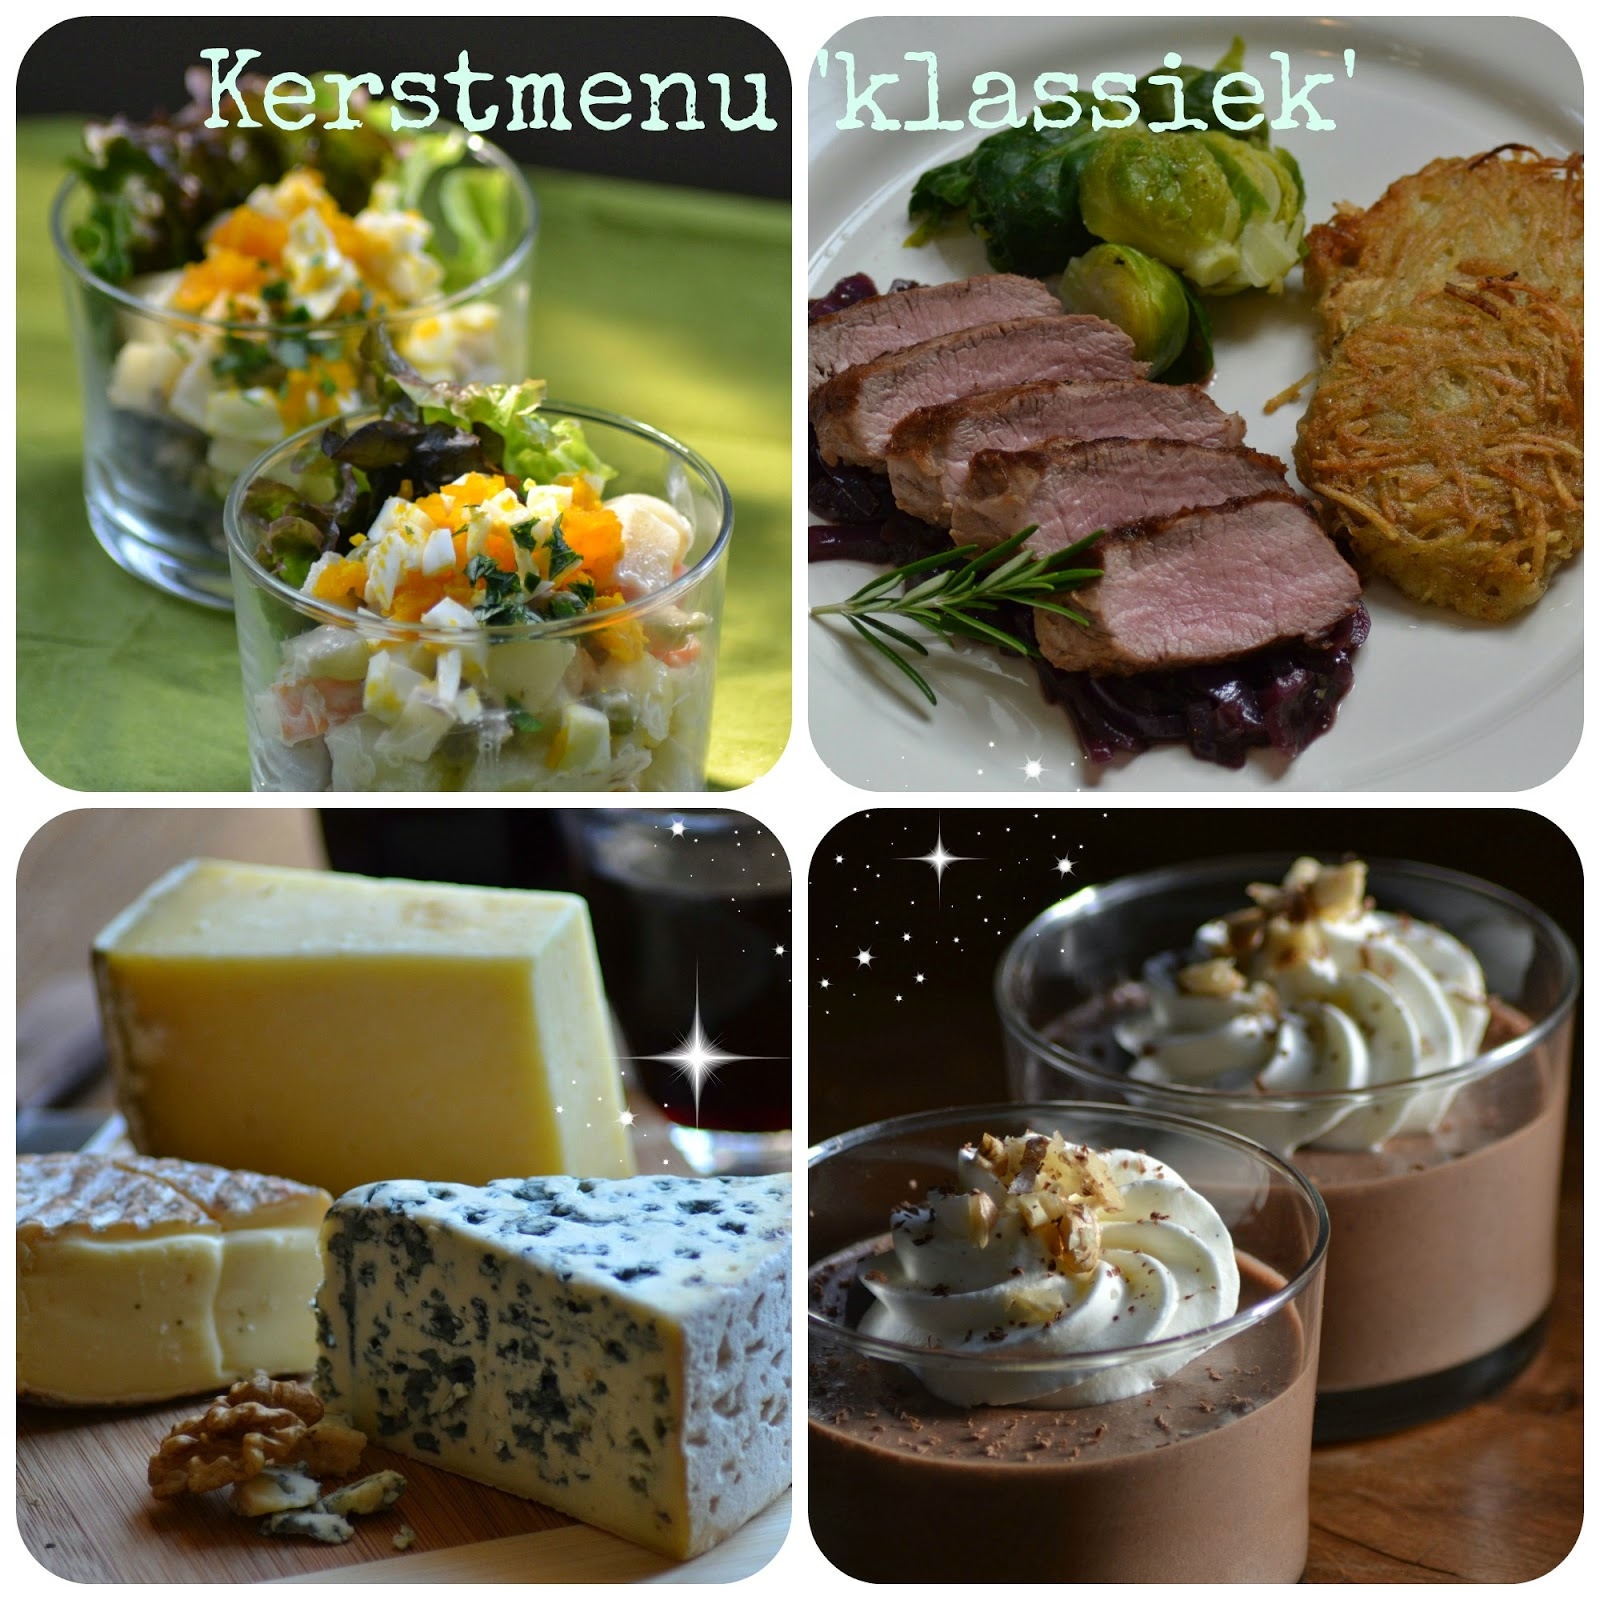 Kerstmenu 'klassiek'